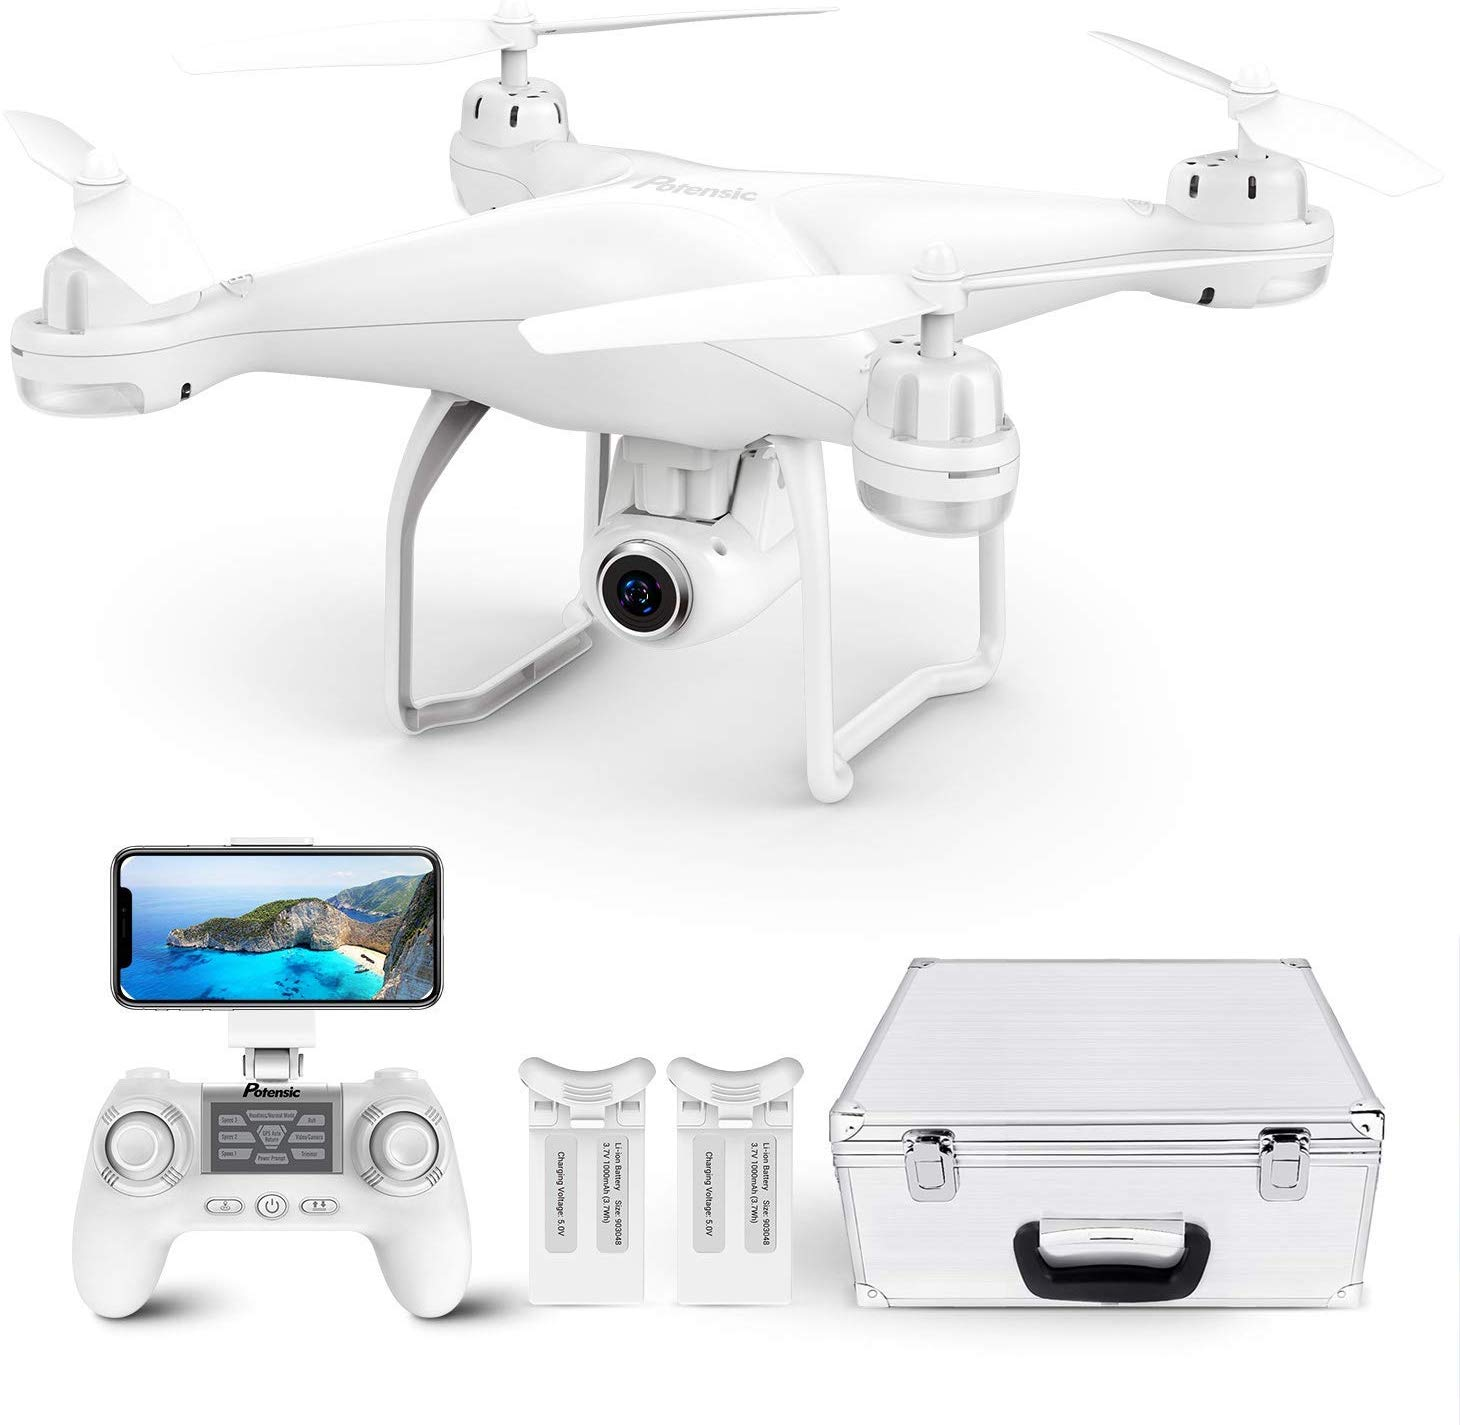 Potensic T25 GPS Drone amazon